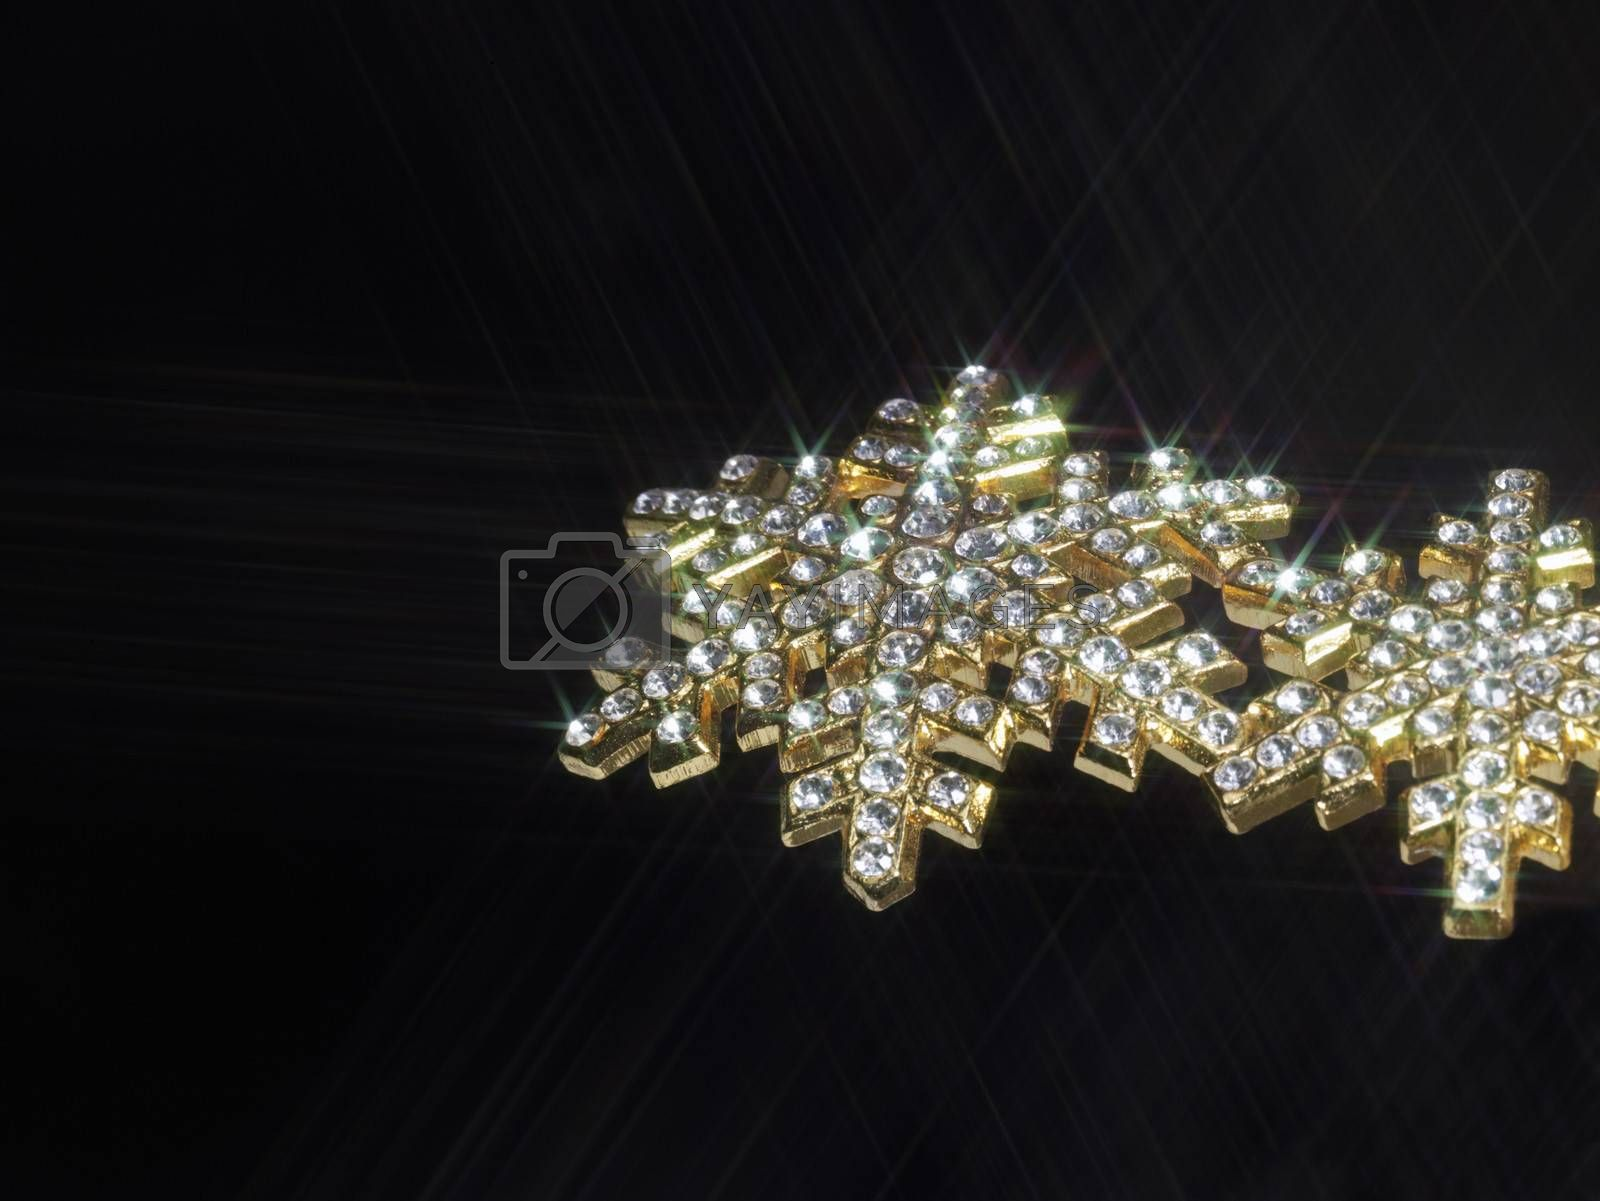 shiny jewelry in dark back, effective illuminated with a optical star-filter